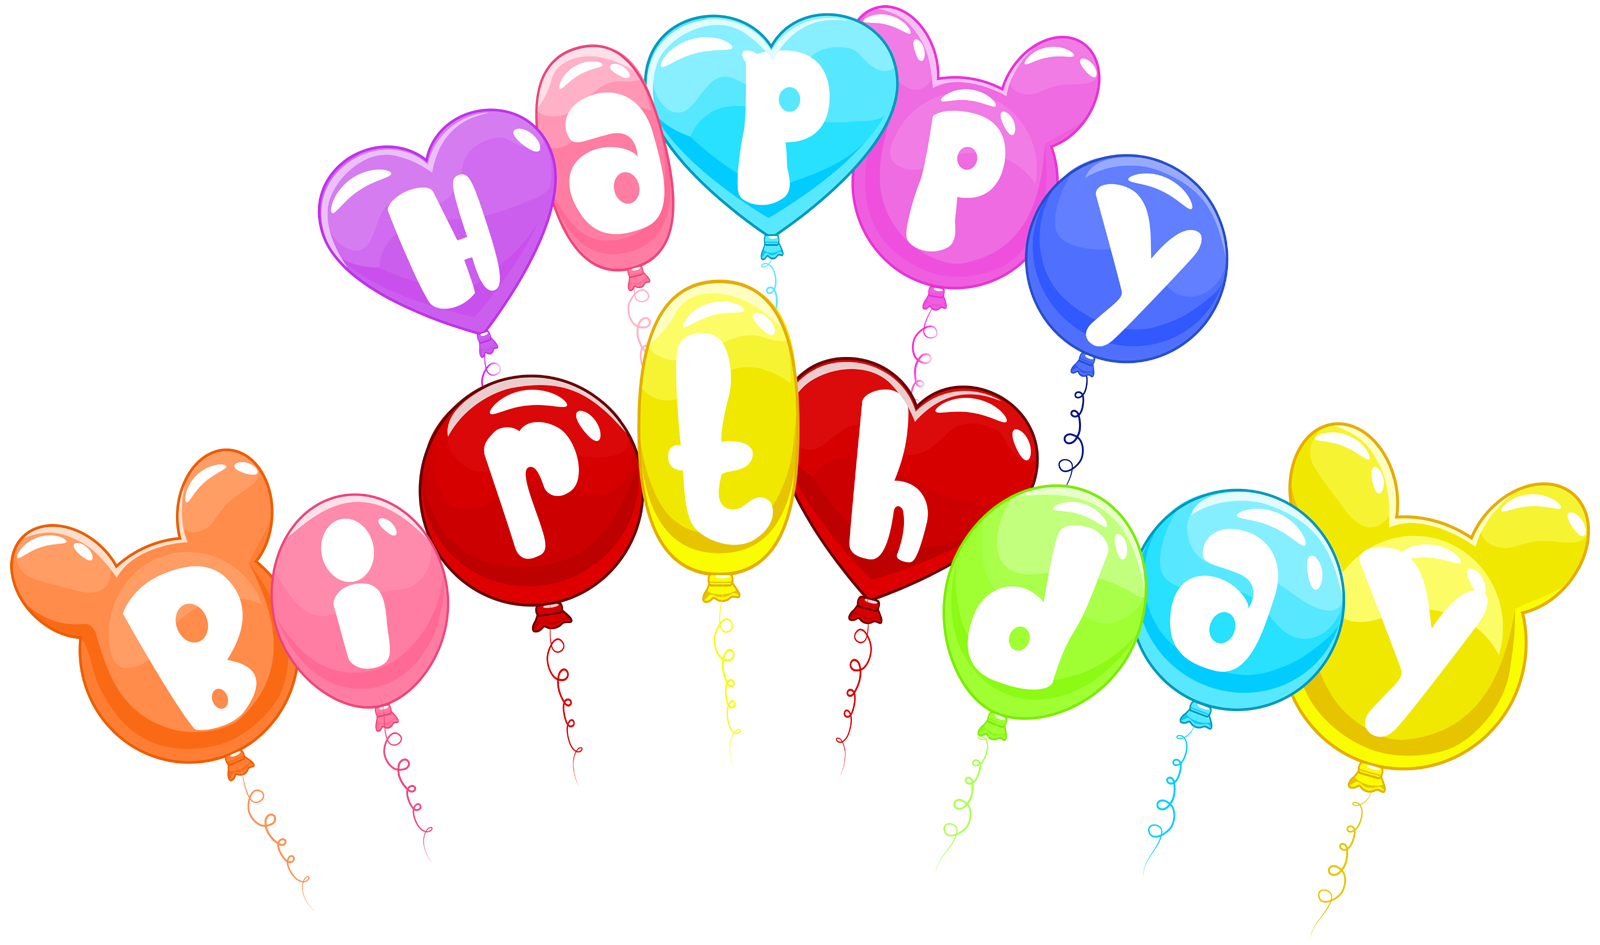 vector freeuse library Happy birthday clipart images. Text art design in